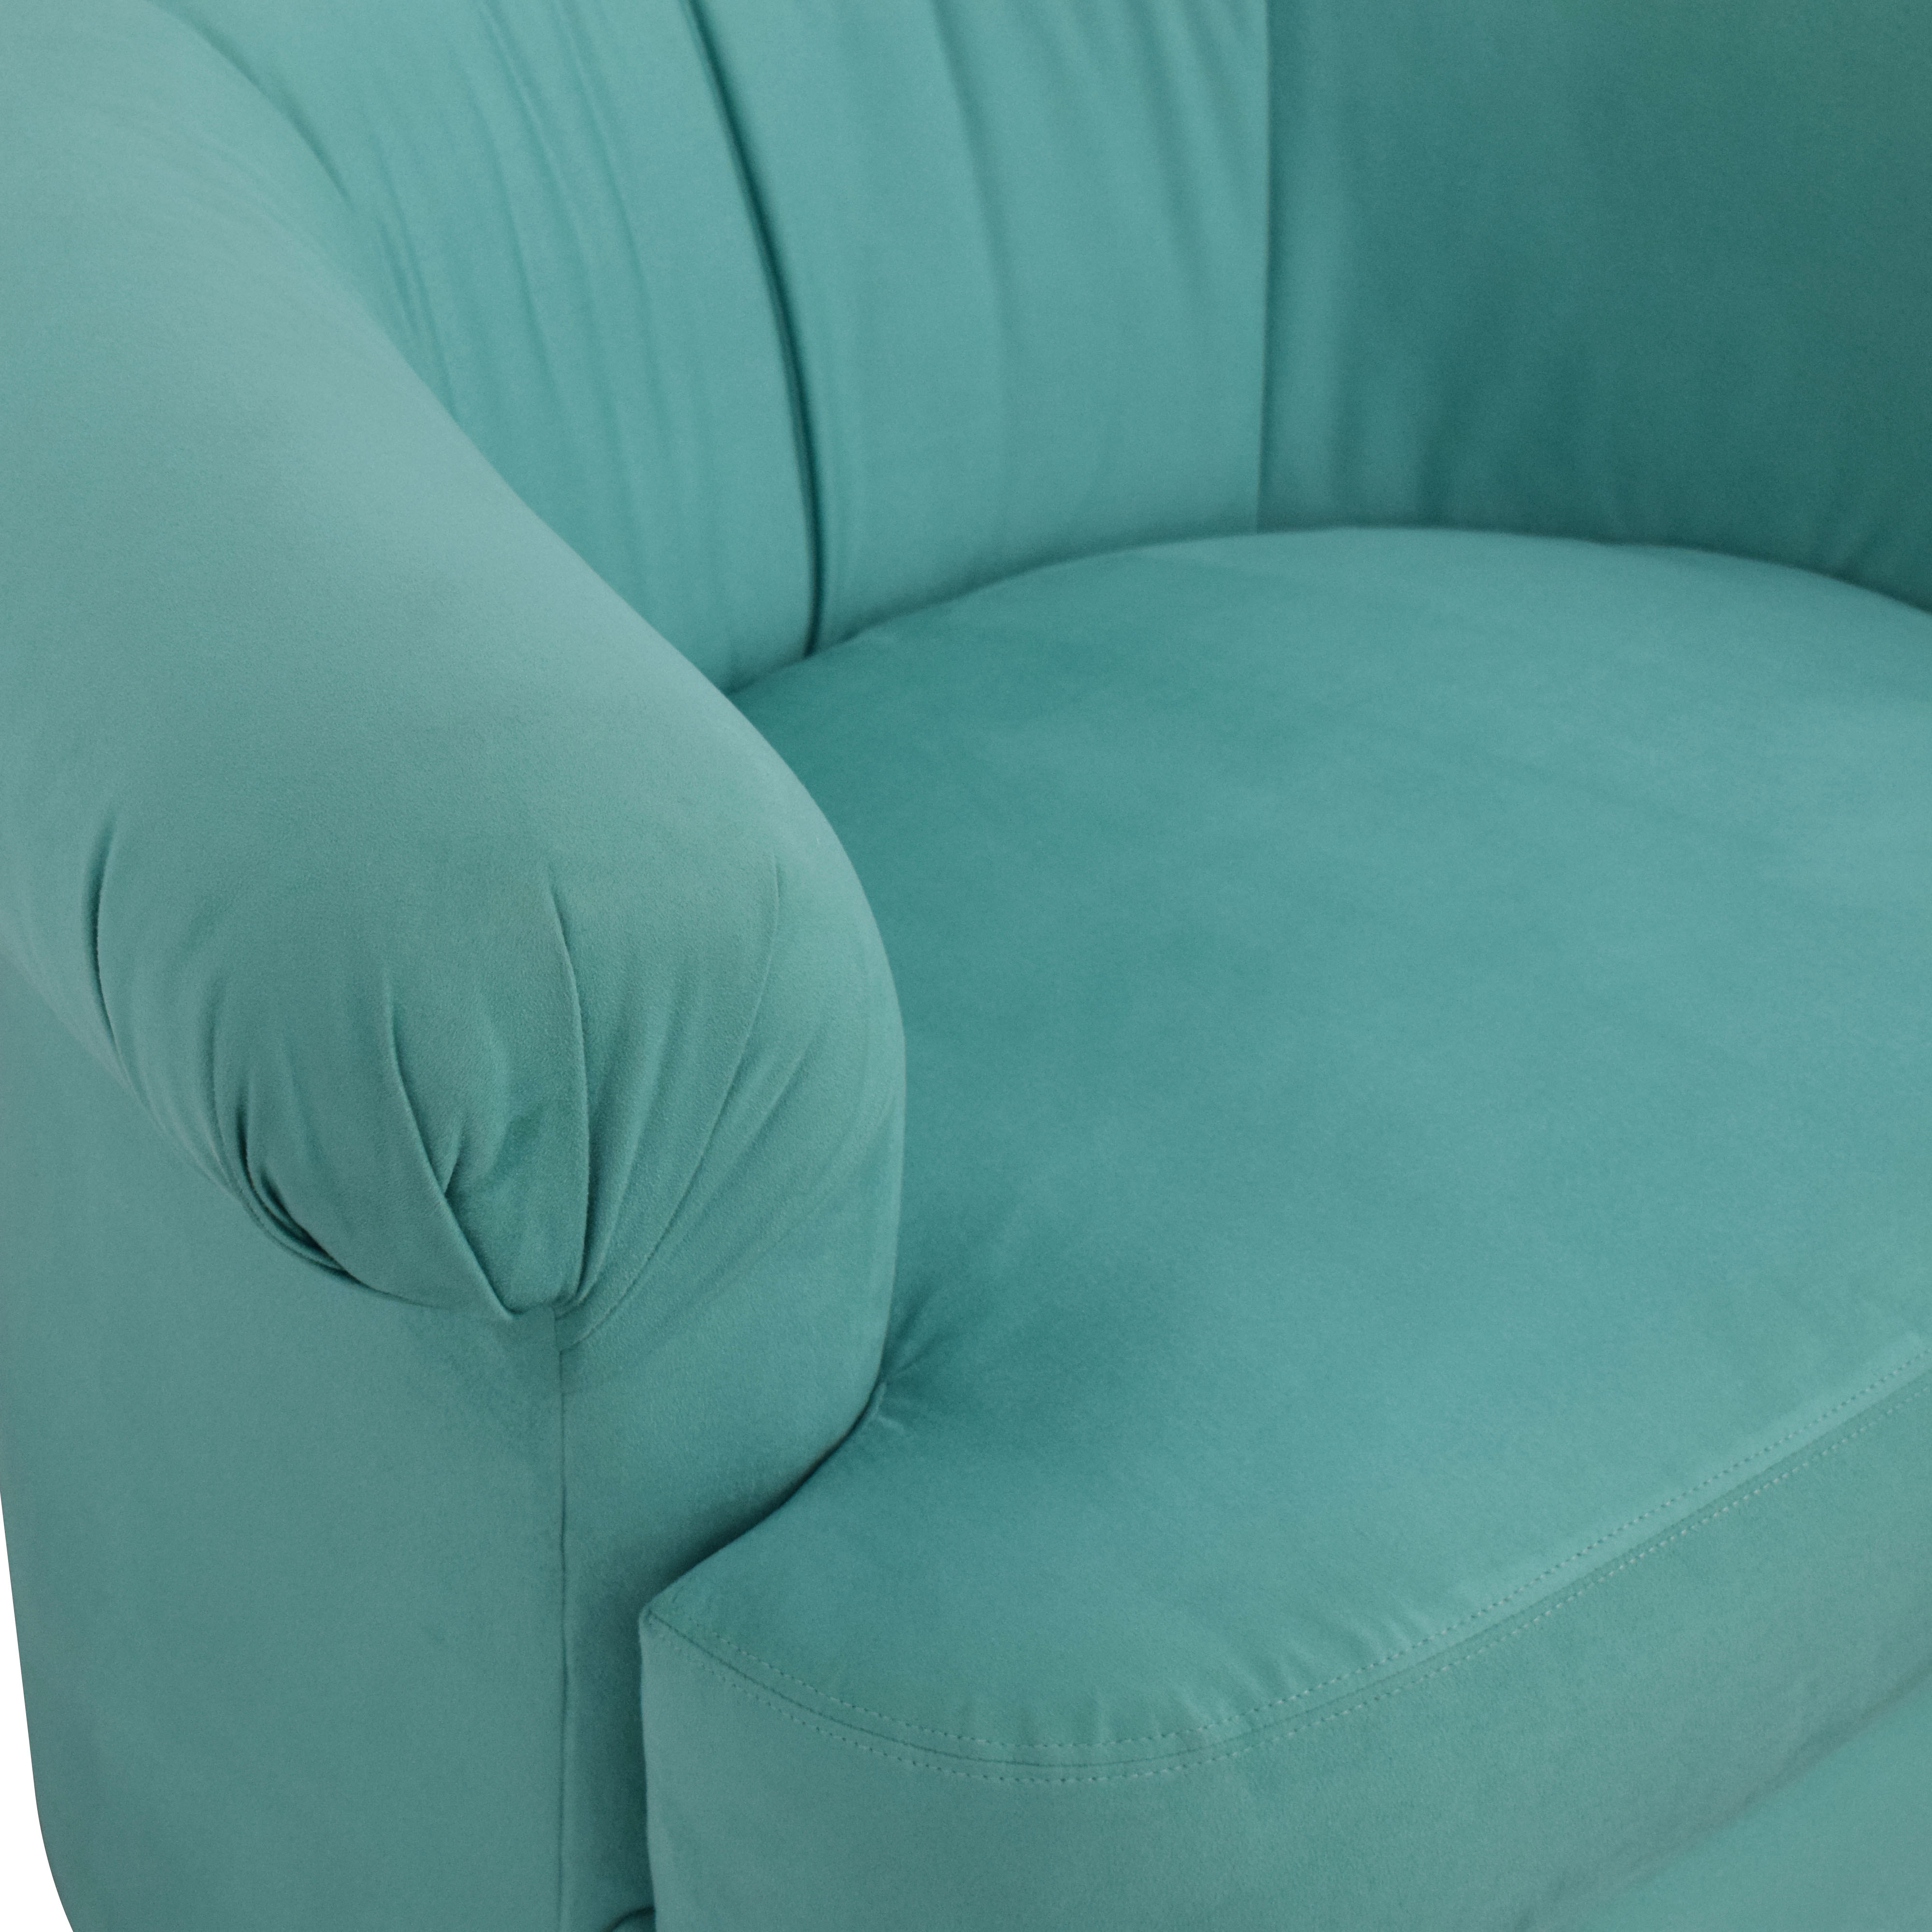 Directional Furniture Directional Furniture Suede Chair second hand